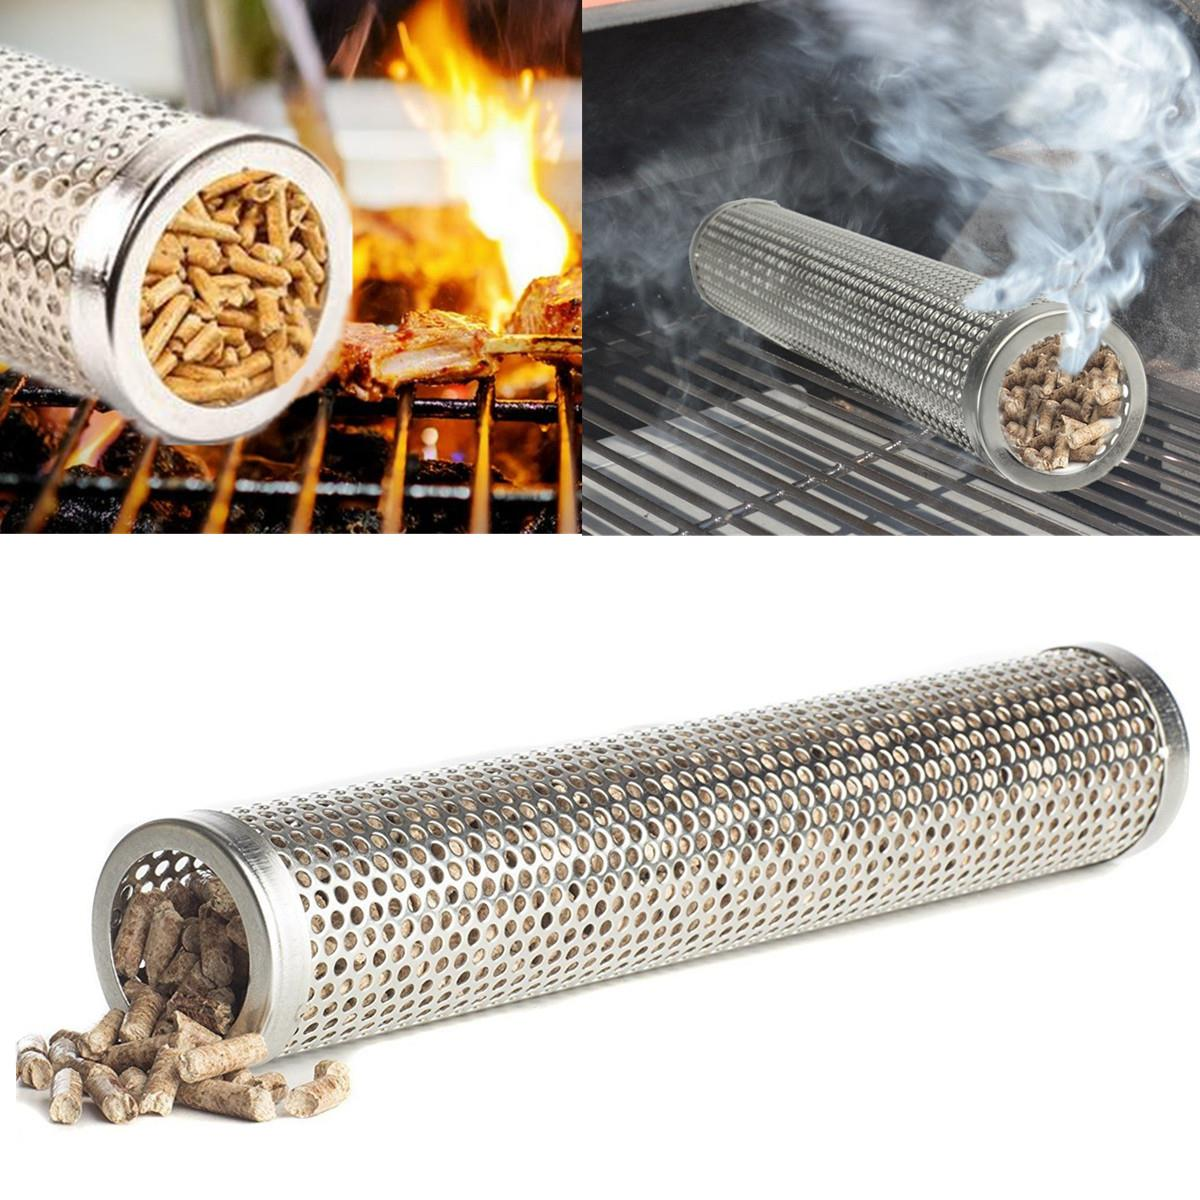 Round BBQ Grill Hot Cold Smoking Mesh Tube Smoke Generator Stainless Steel  Smoker Wood Pellet Kitchen Outdoors Barbecue Supplies On Aliexpress.com |  Alibaba ...